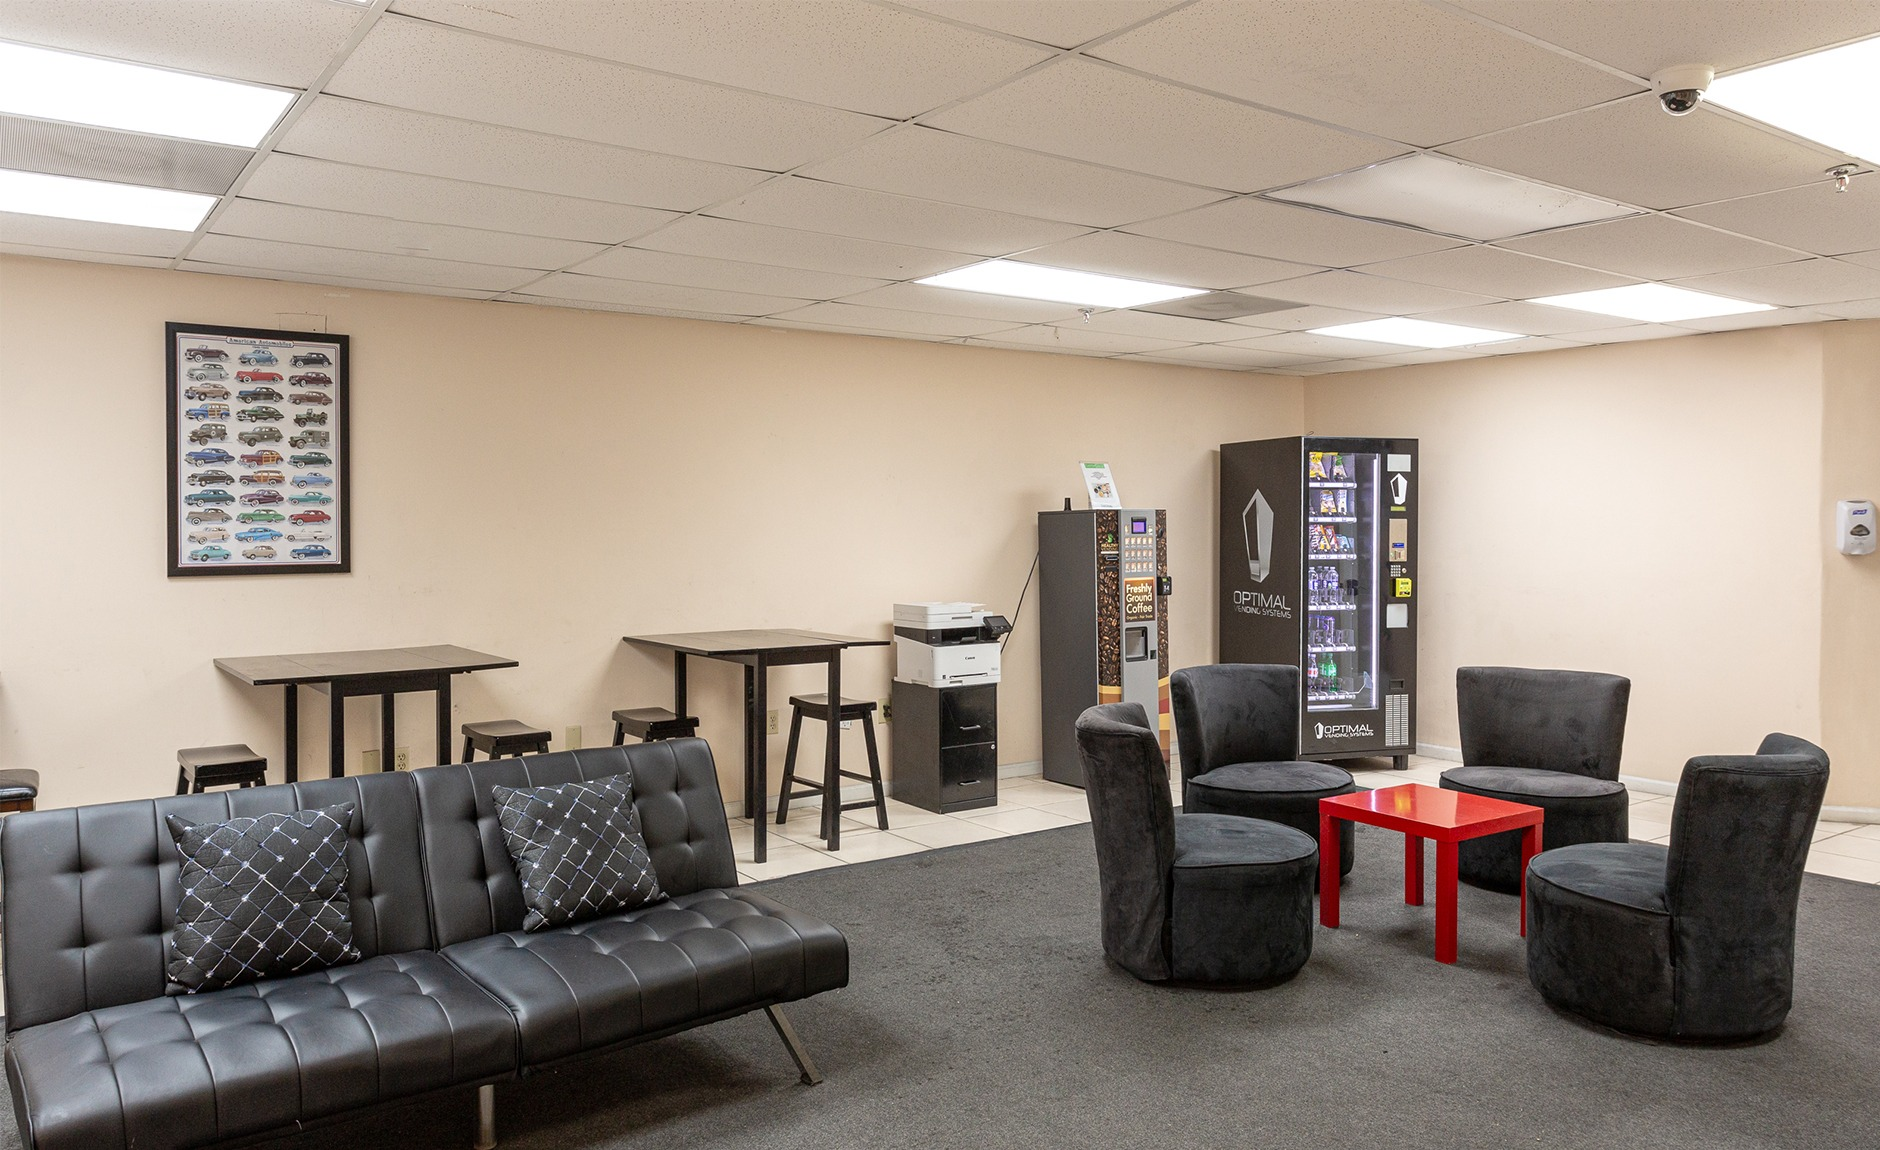 doral coworking space